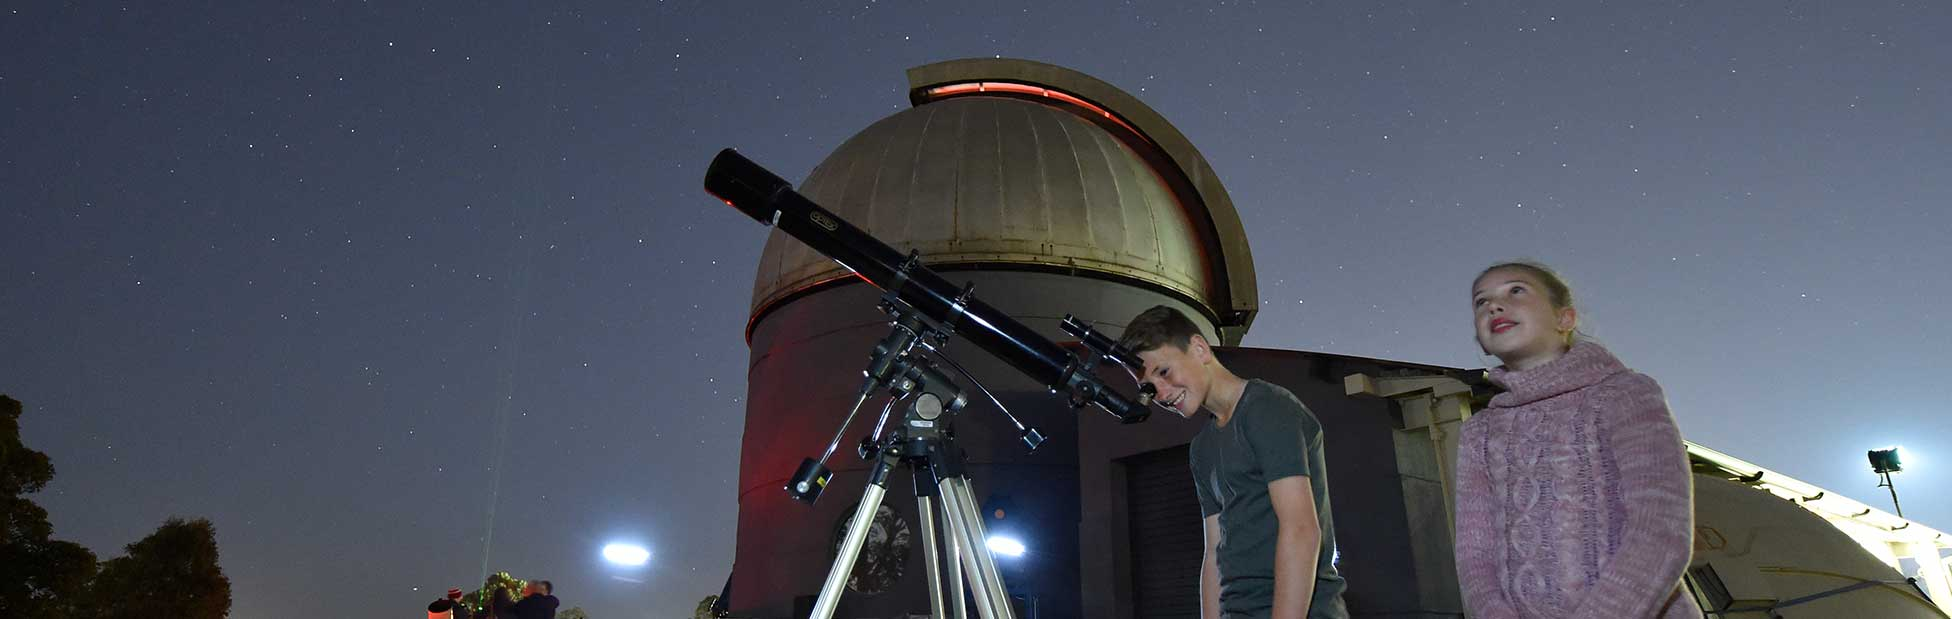 Boy looking through telescope, girl looking at sky with observatory behind them